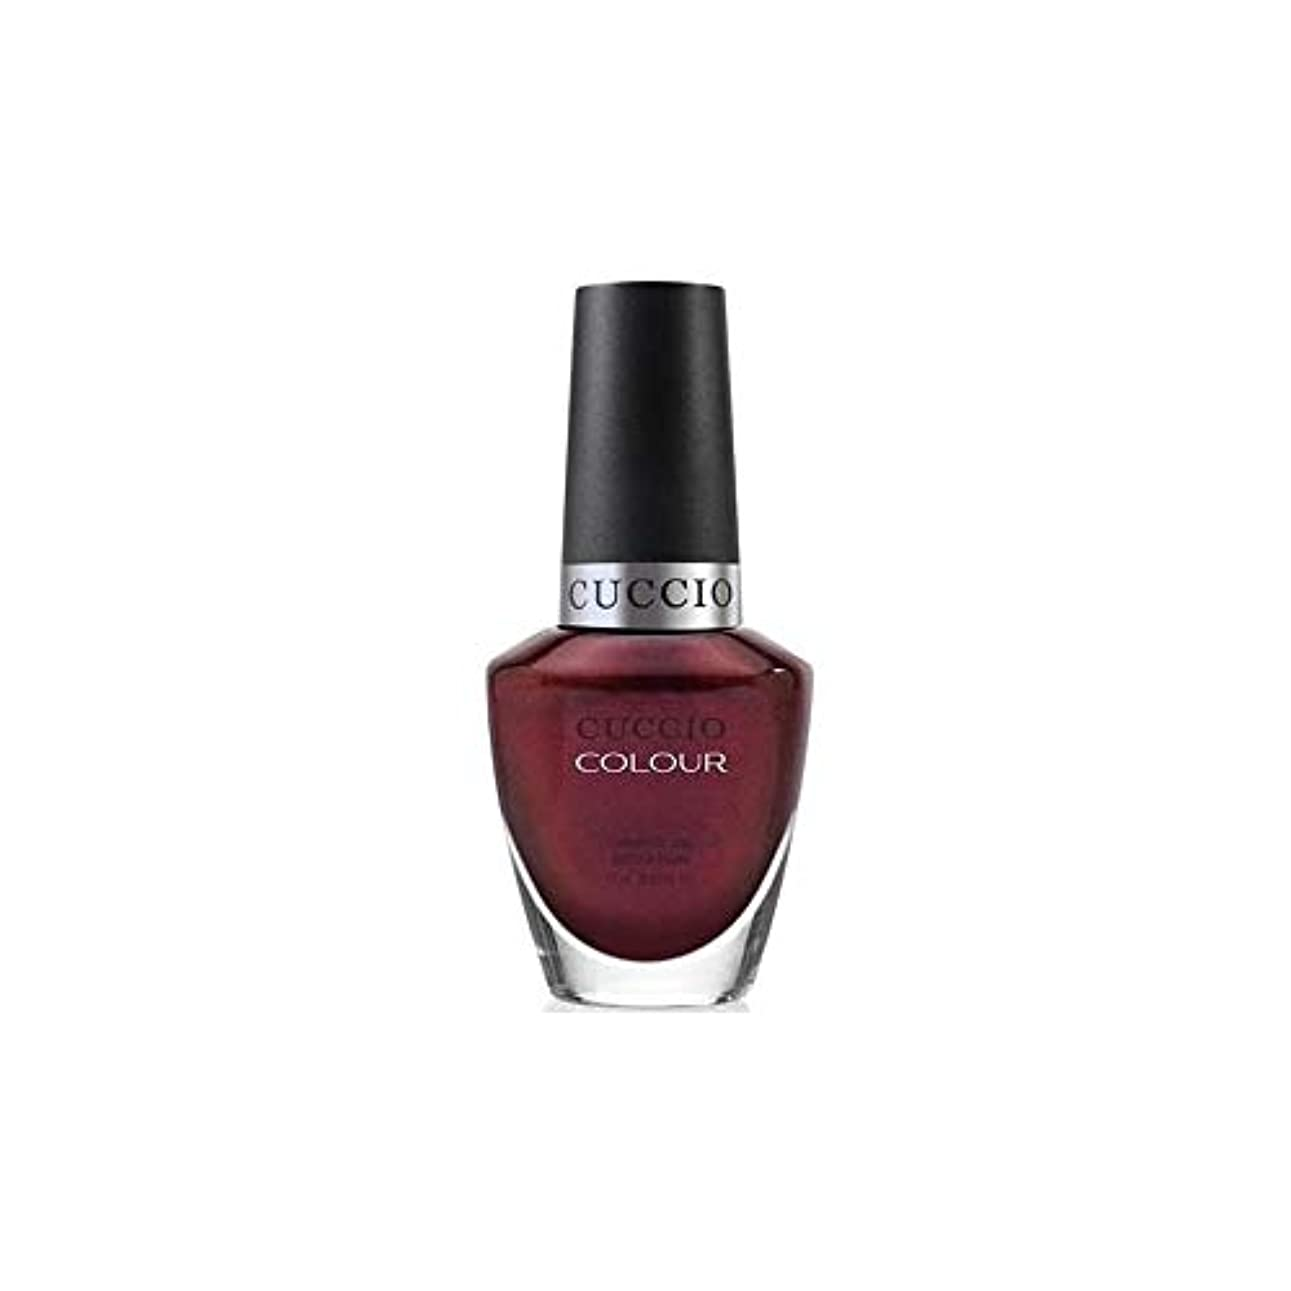 ギャロップジョグスイCuccio Colour Gloss Lacquer - Royal Flush - 0.43oz / 13ml